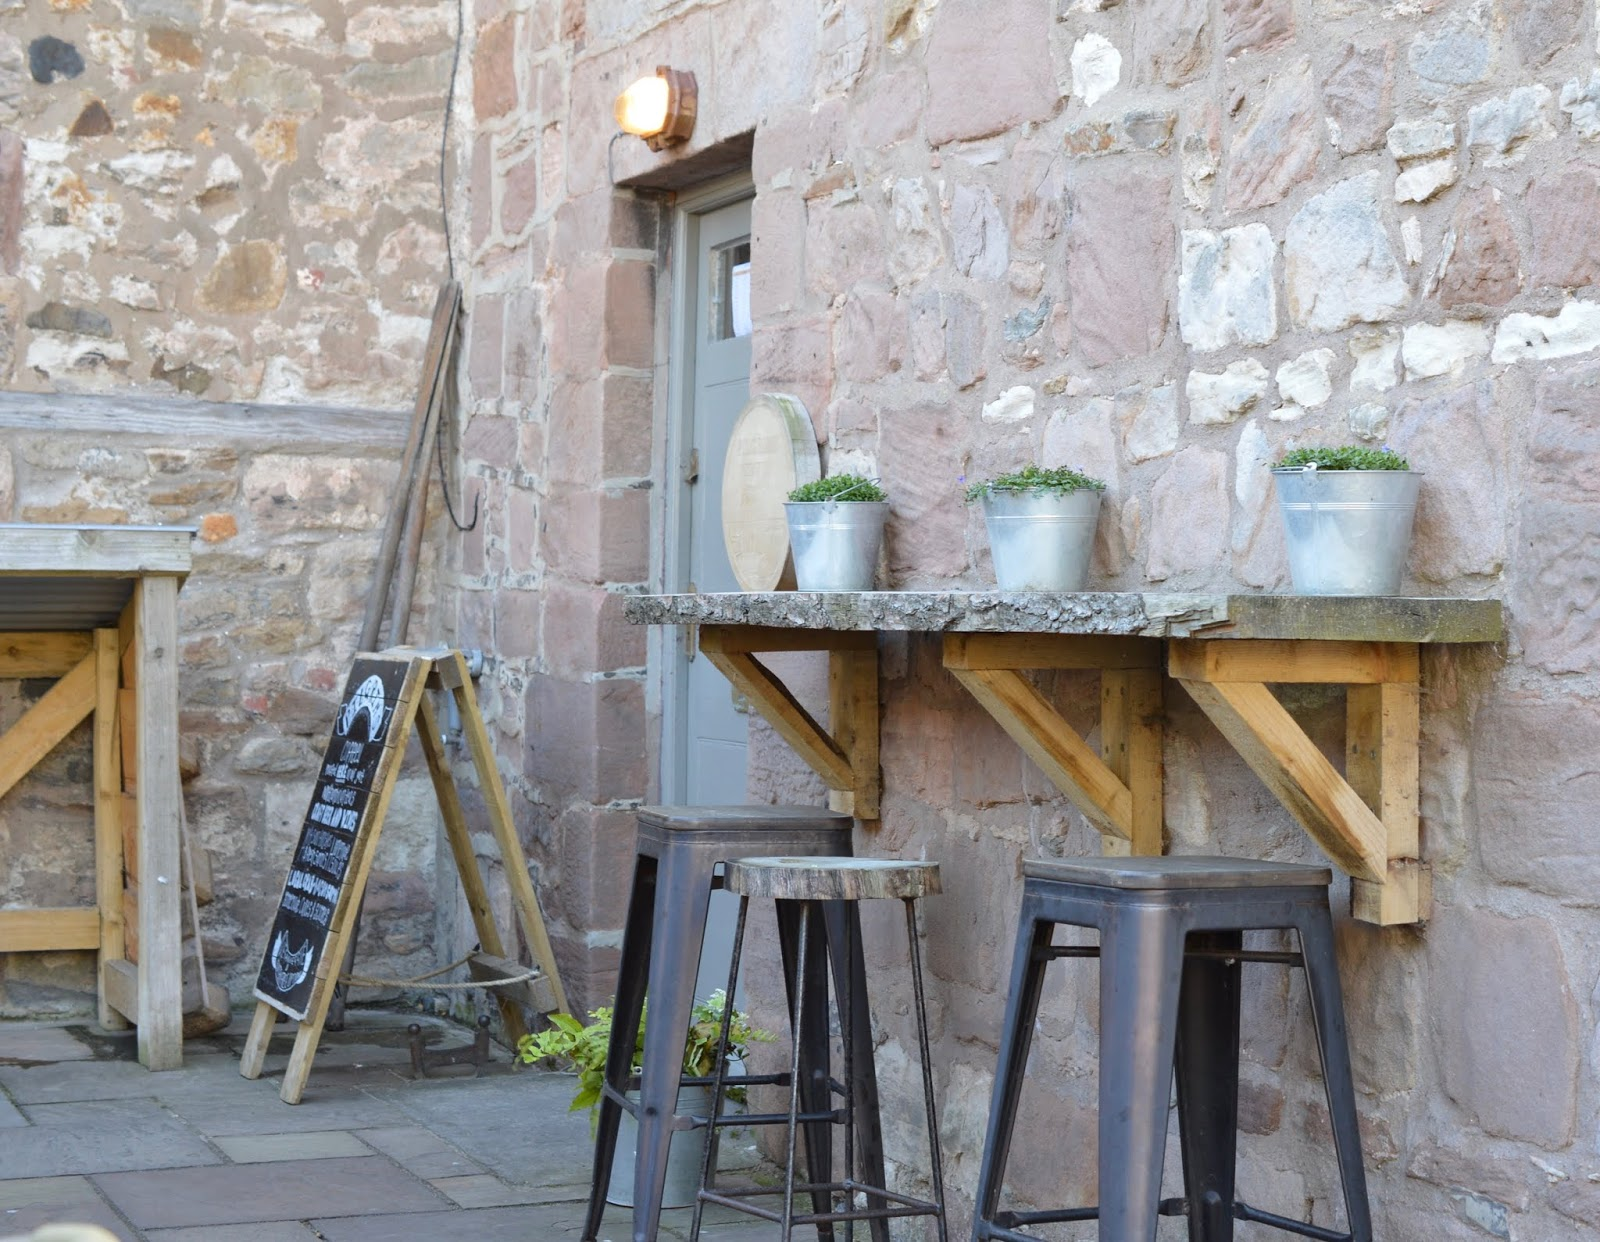 The Holy Island of Lindisfarne, Northumberland - what to see and do during a half day visit - pilgrims coffee outdoor seating